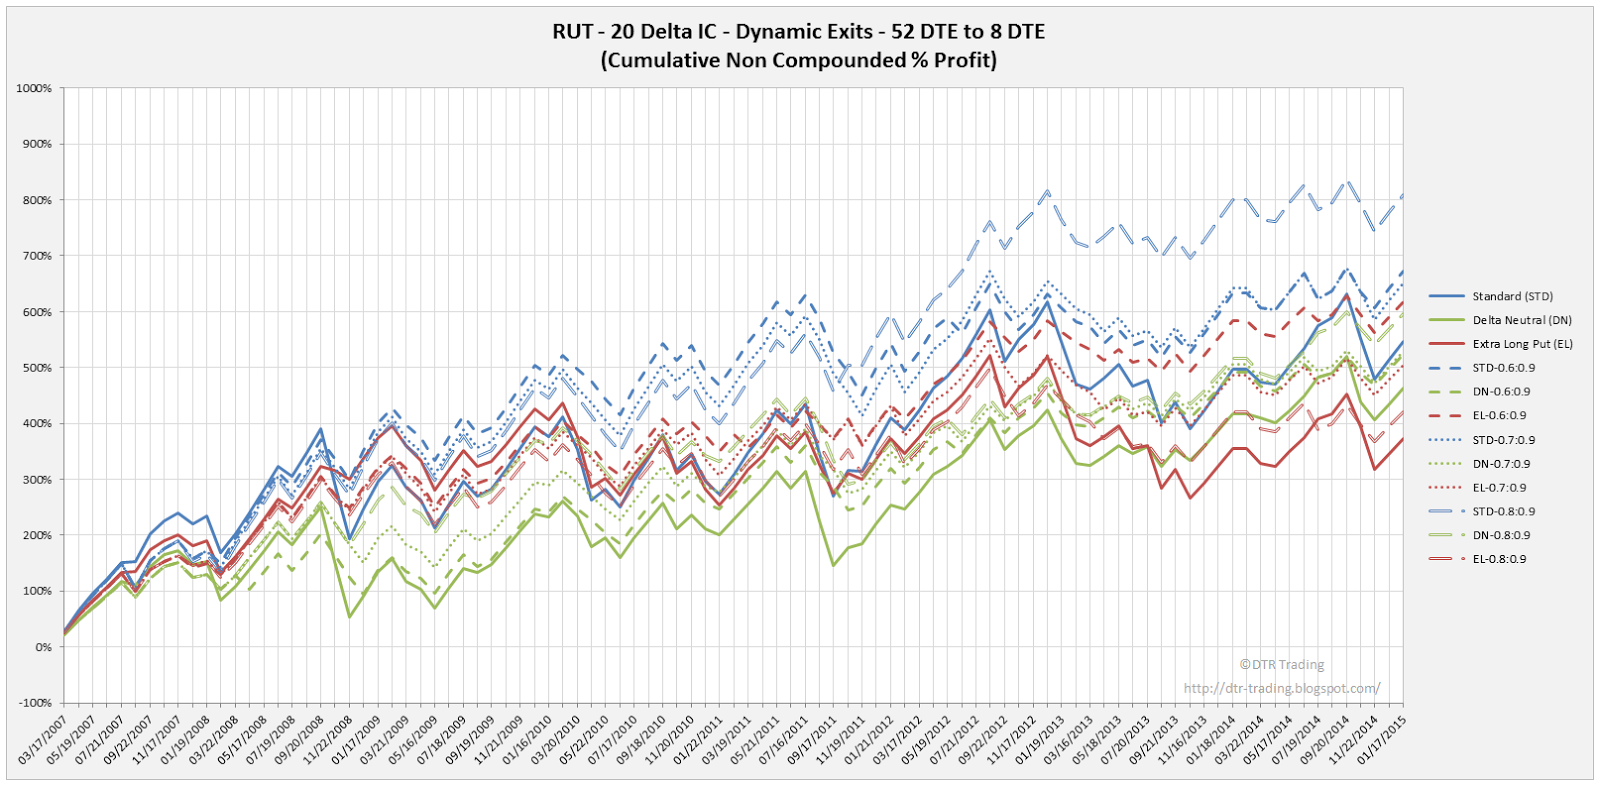 Iron Condor Dynamic Exit Equity Curves RUT 52 DTE 20 Delta Risk:Reward Versions